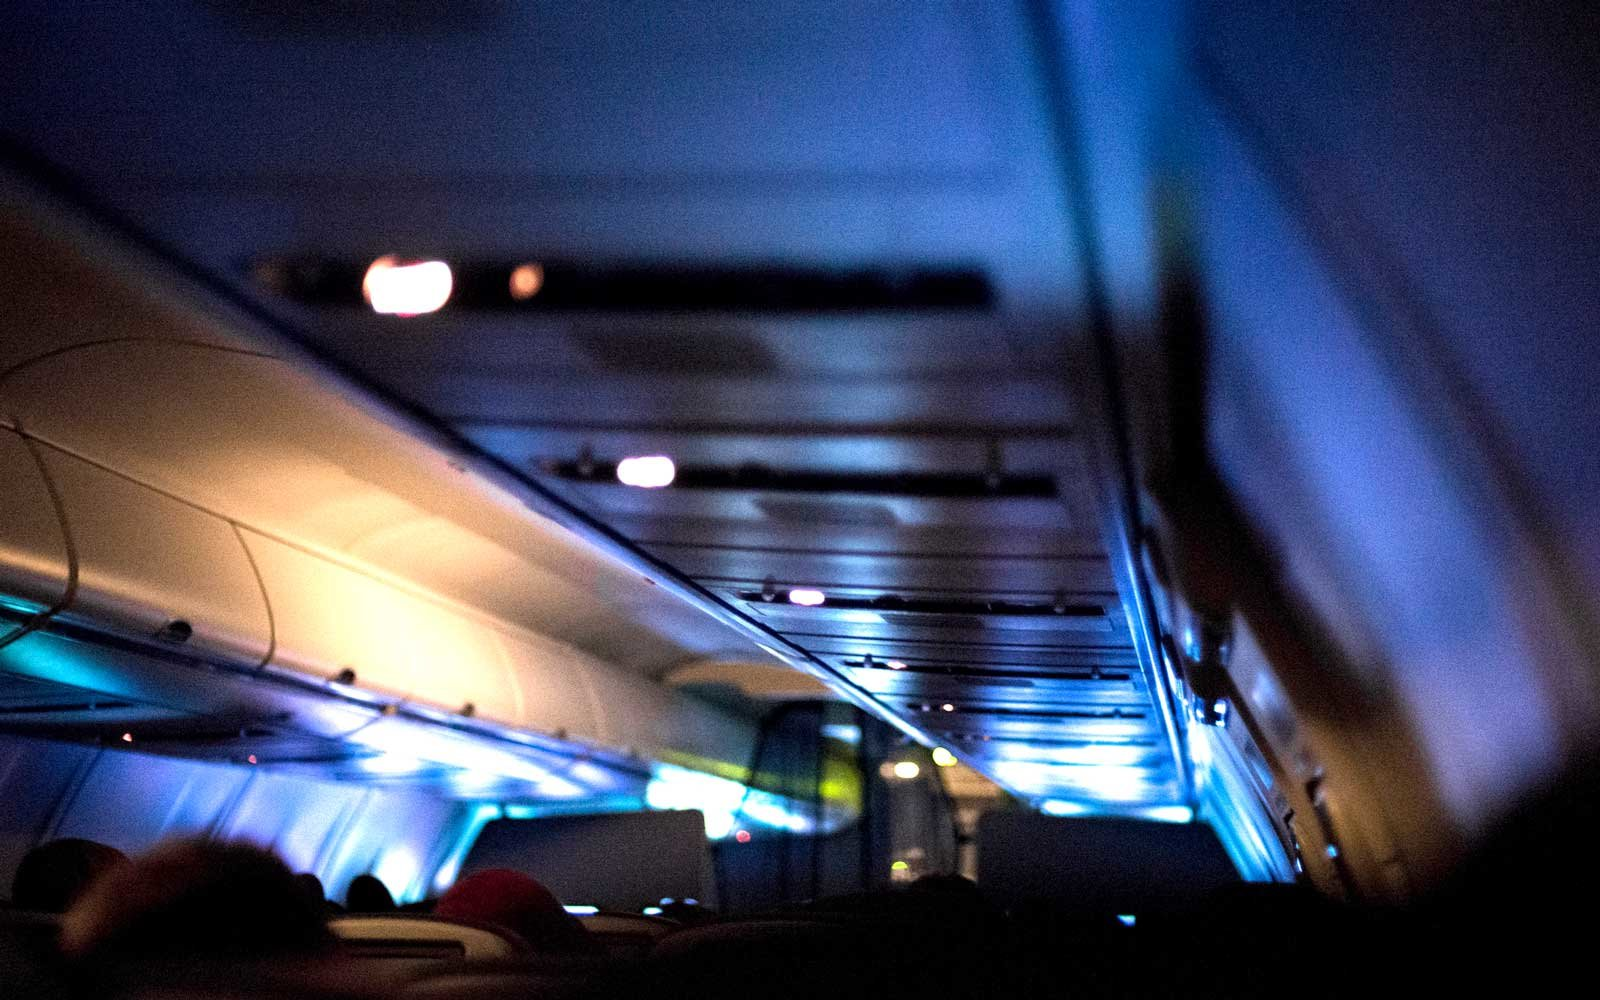 Late Night Flight